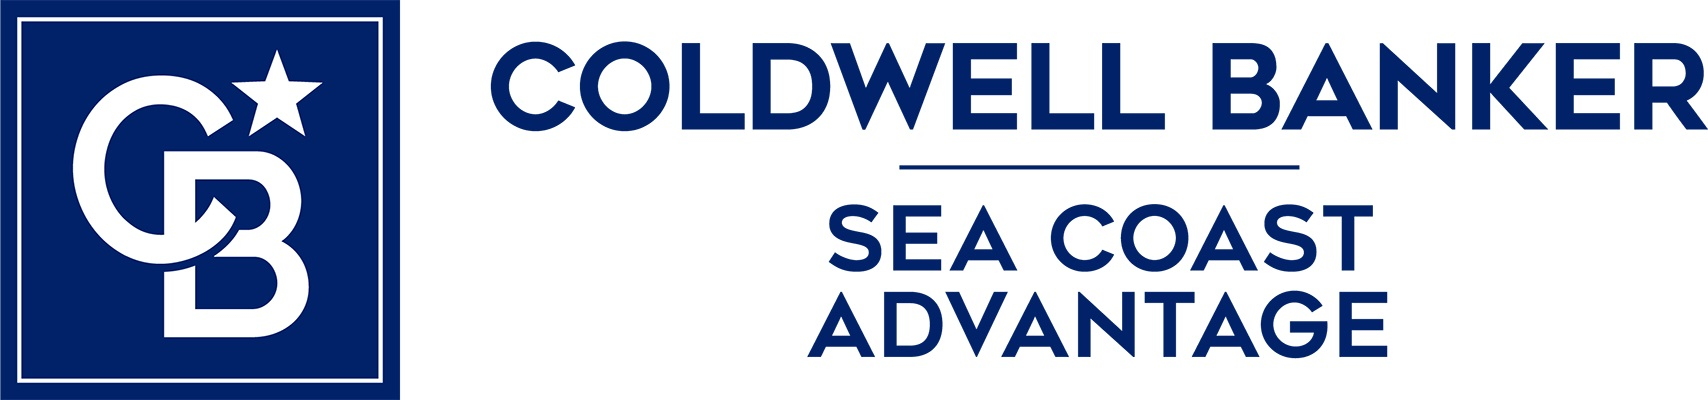 Coldwell Banker Sea Coast Advantage - Barbara Pugh